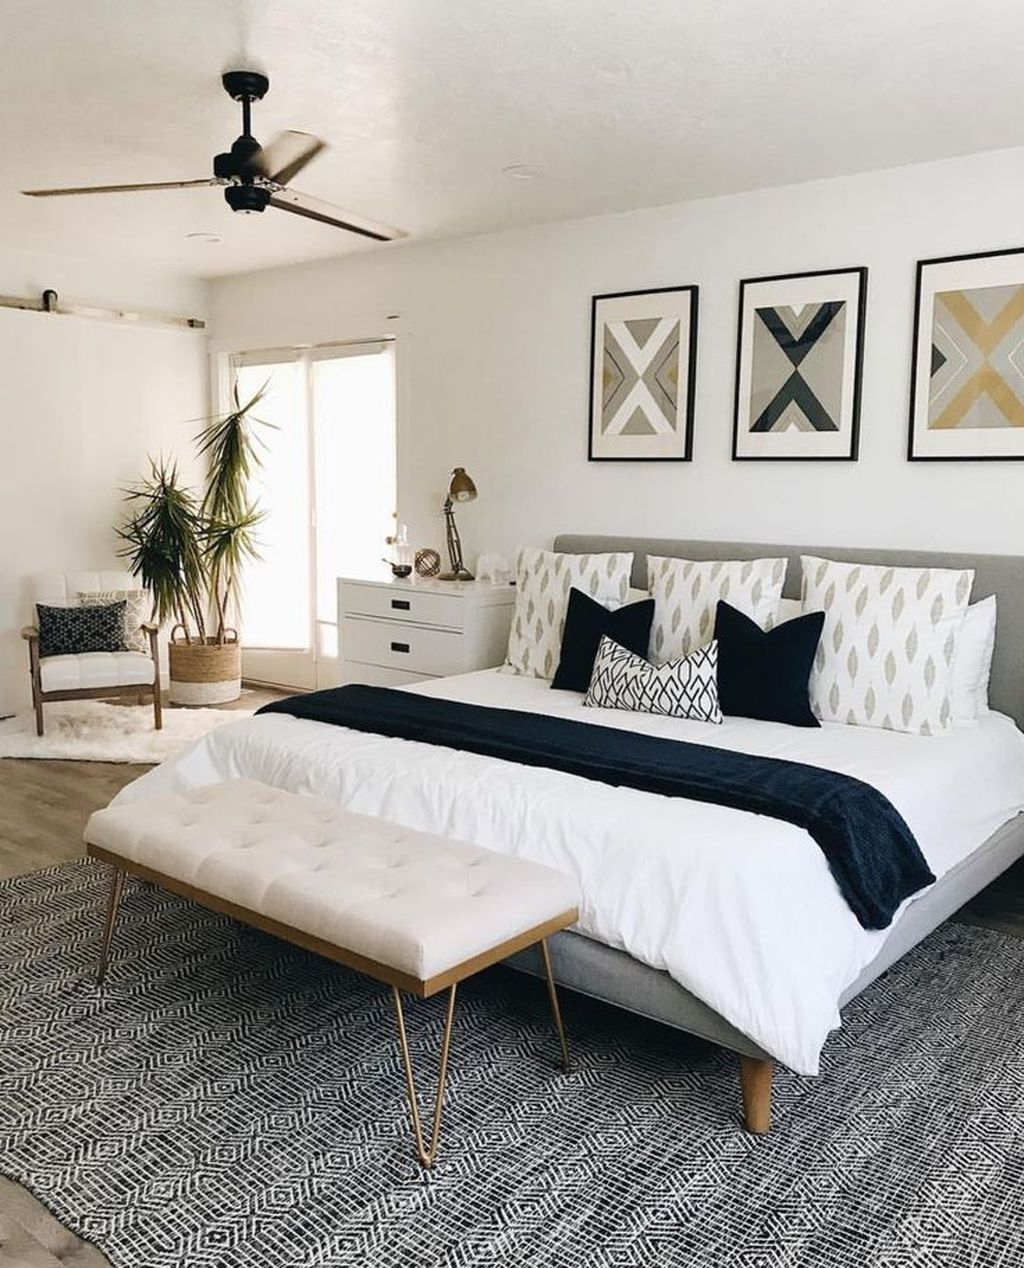 44 Stunning White Master Bedroom Ideas Match For Any Home Design images